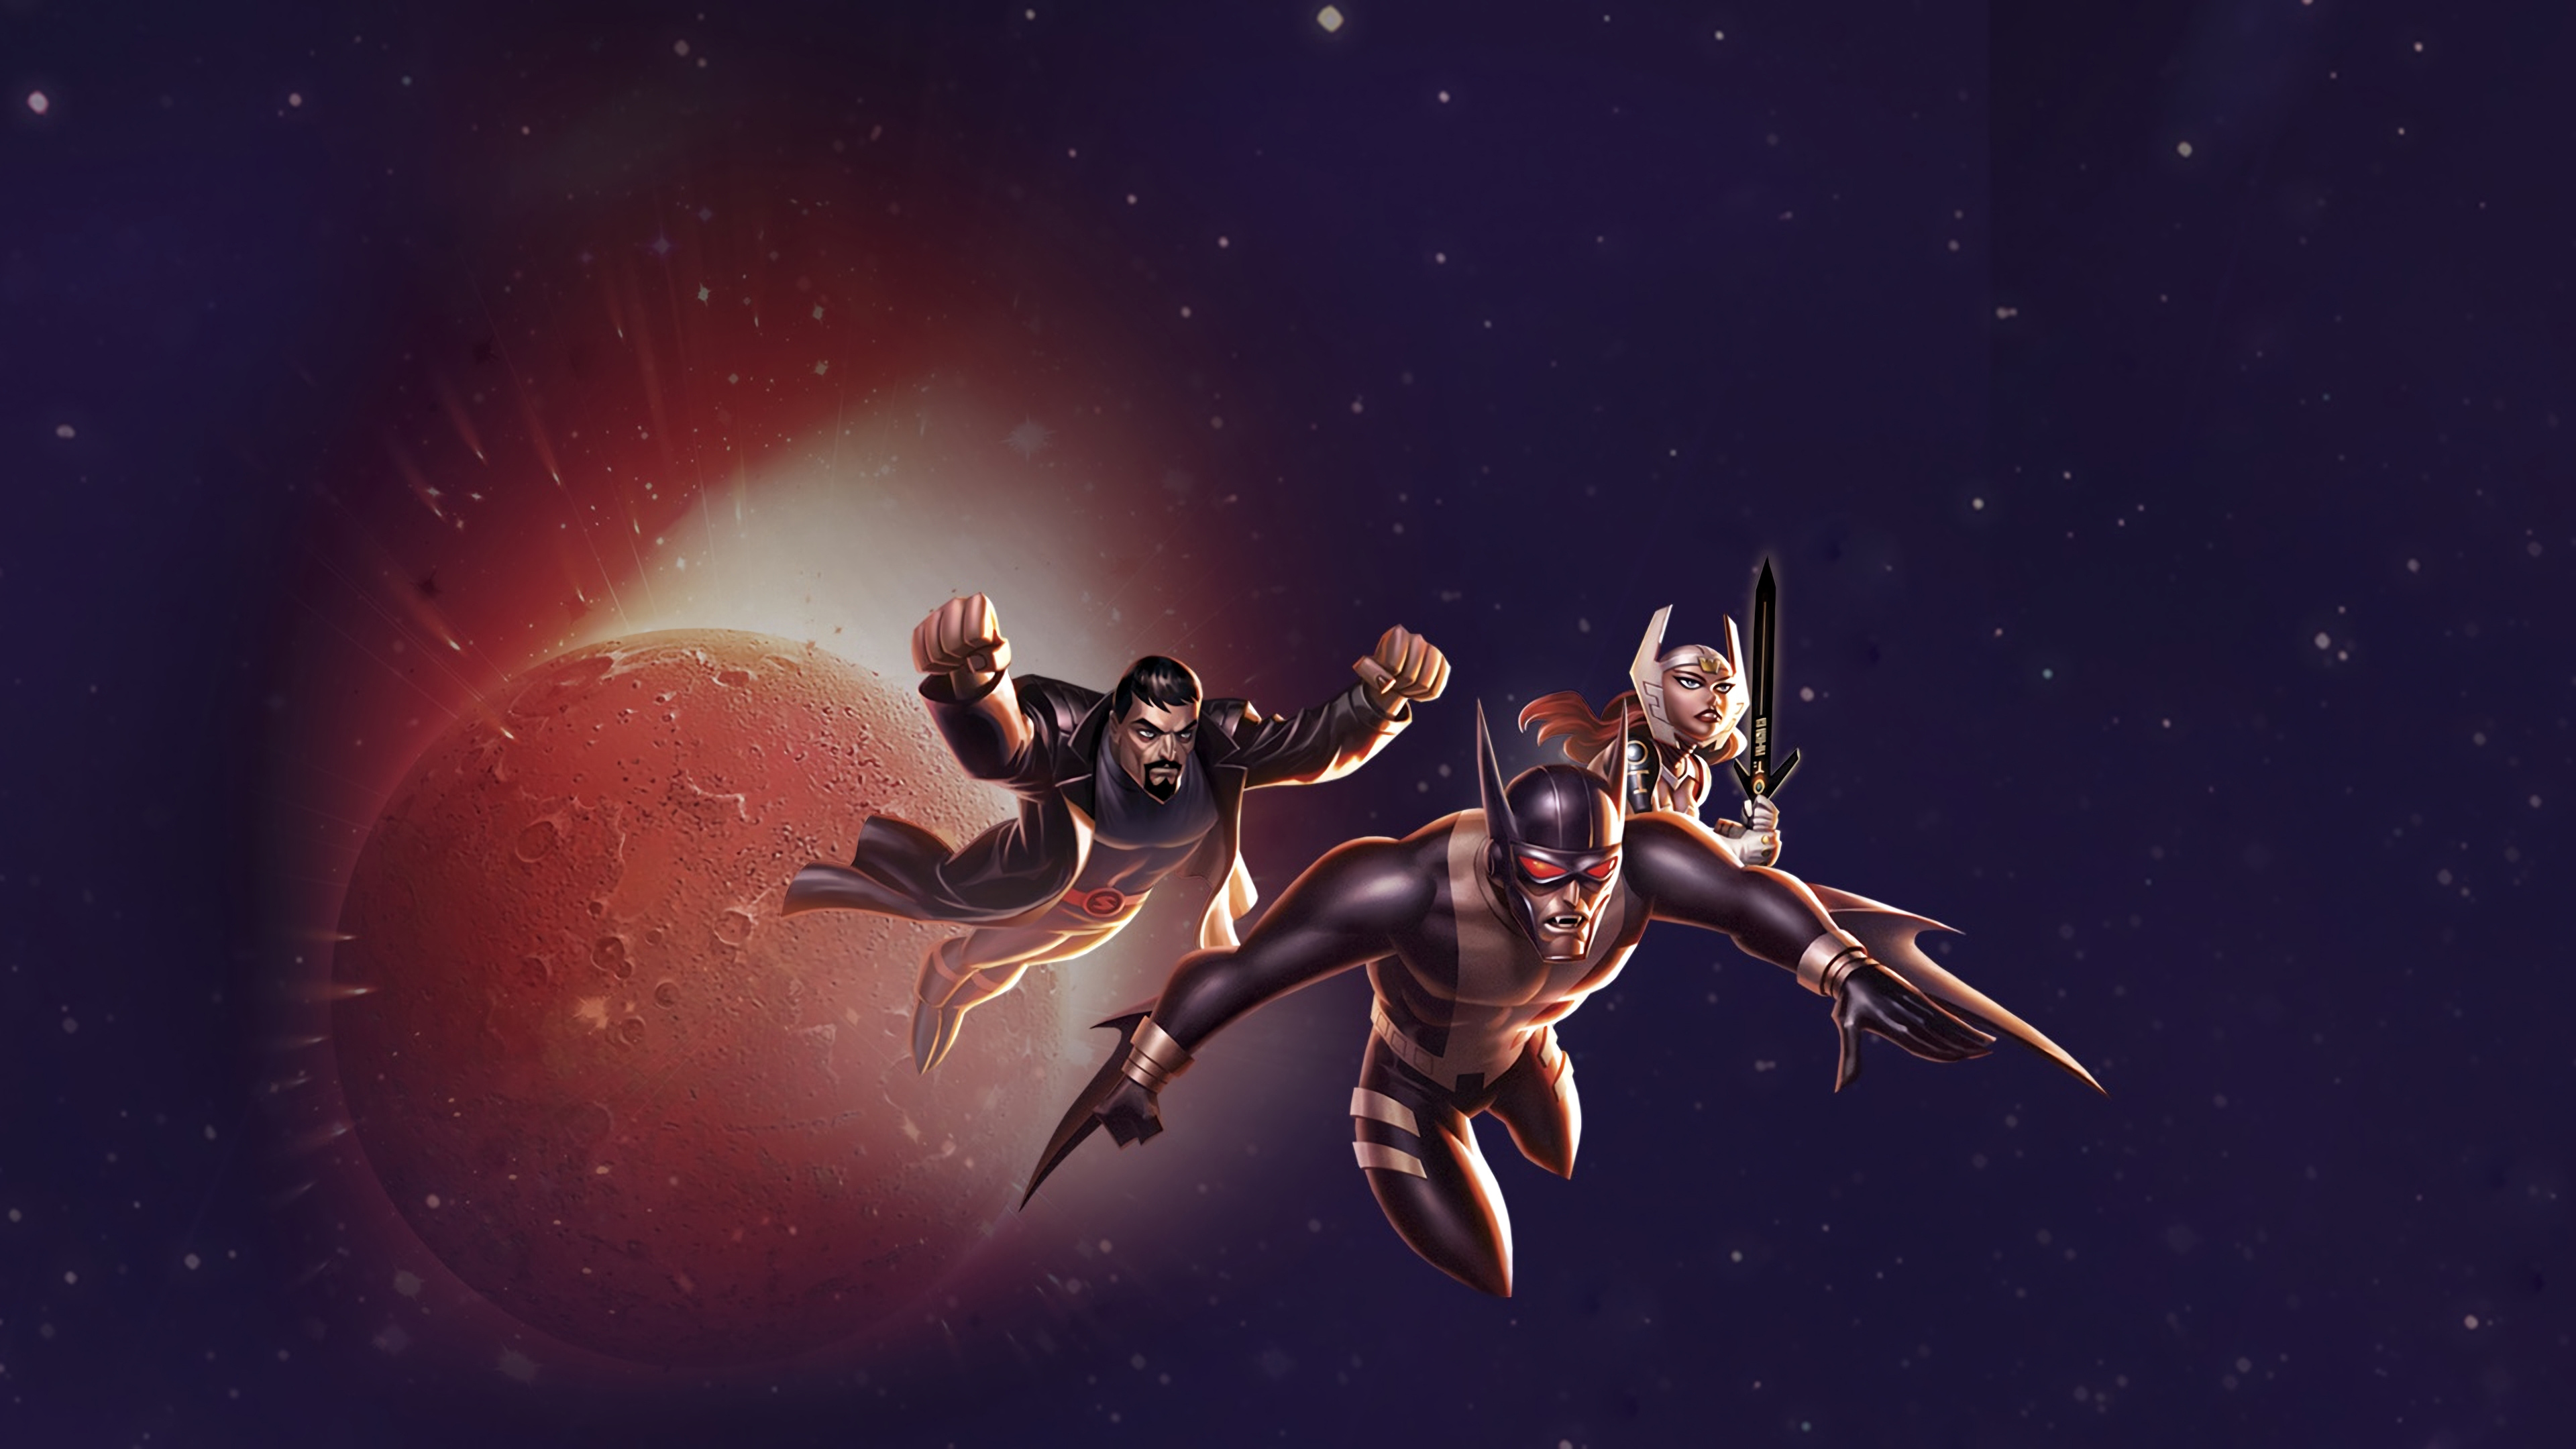 justice league gods and monsters 1569186519 - Justice League Gods And Monsters - superheroes wallpapers, justice league wallpapers, hd-wallpapers, 4k-wallpapers